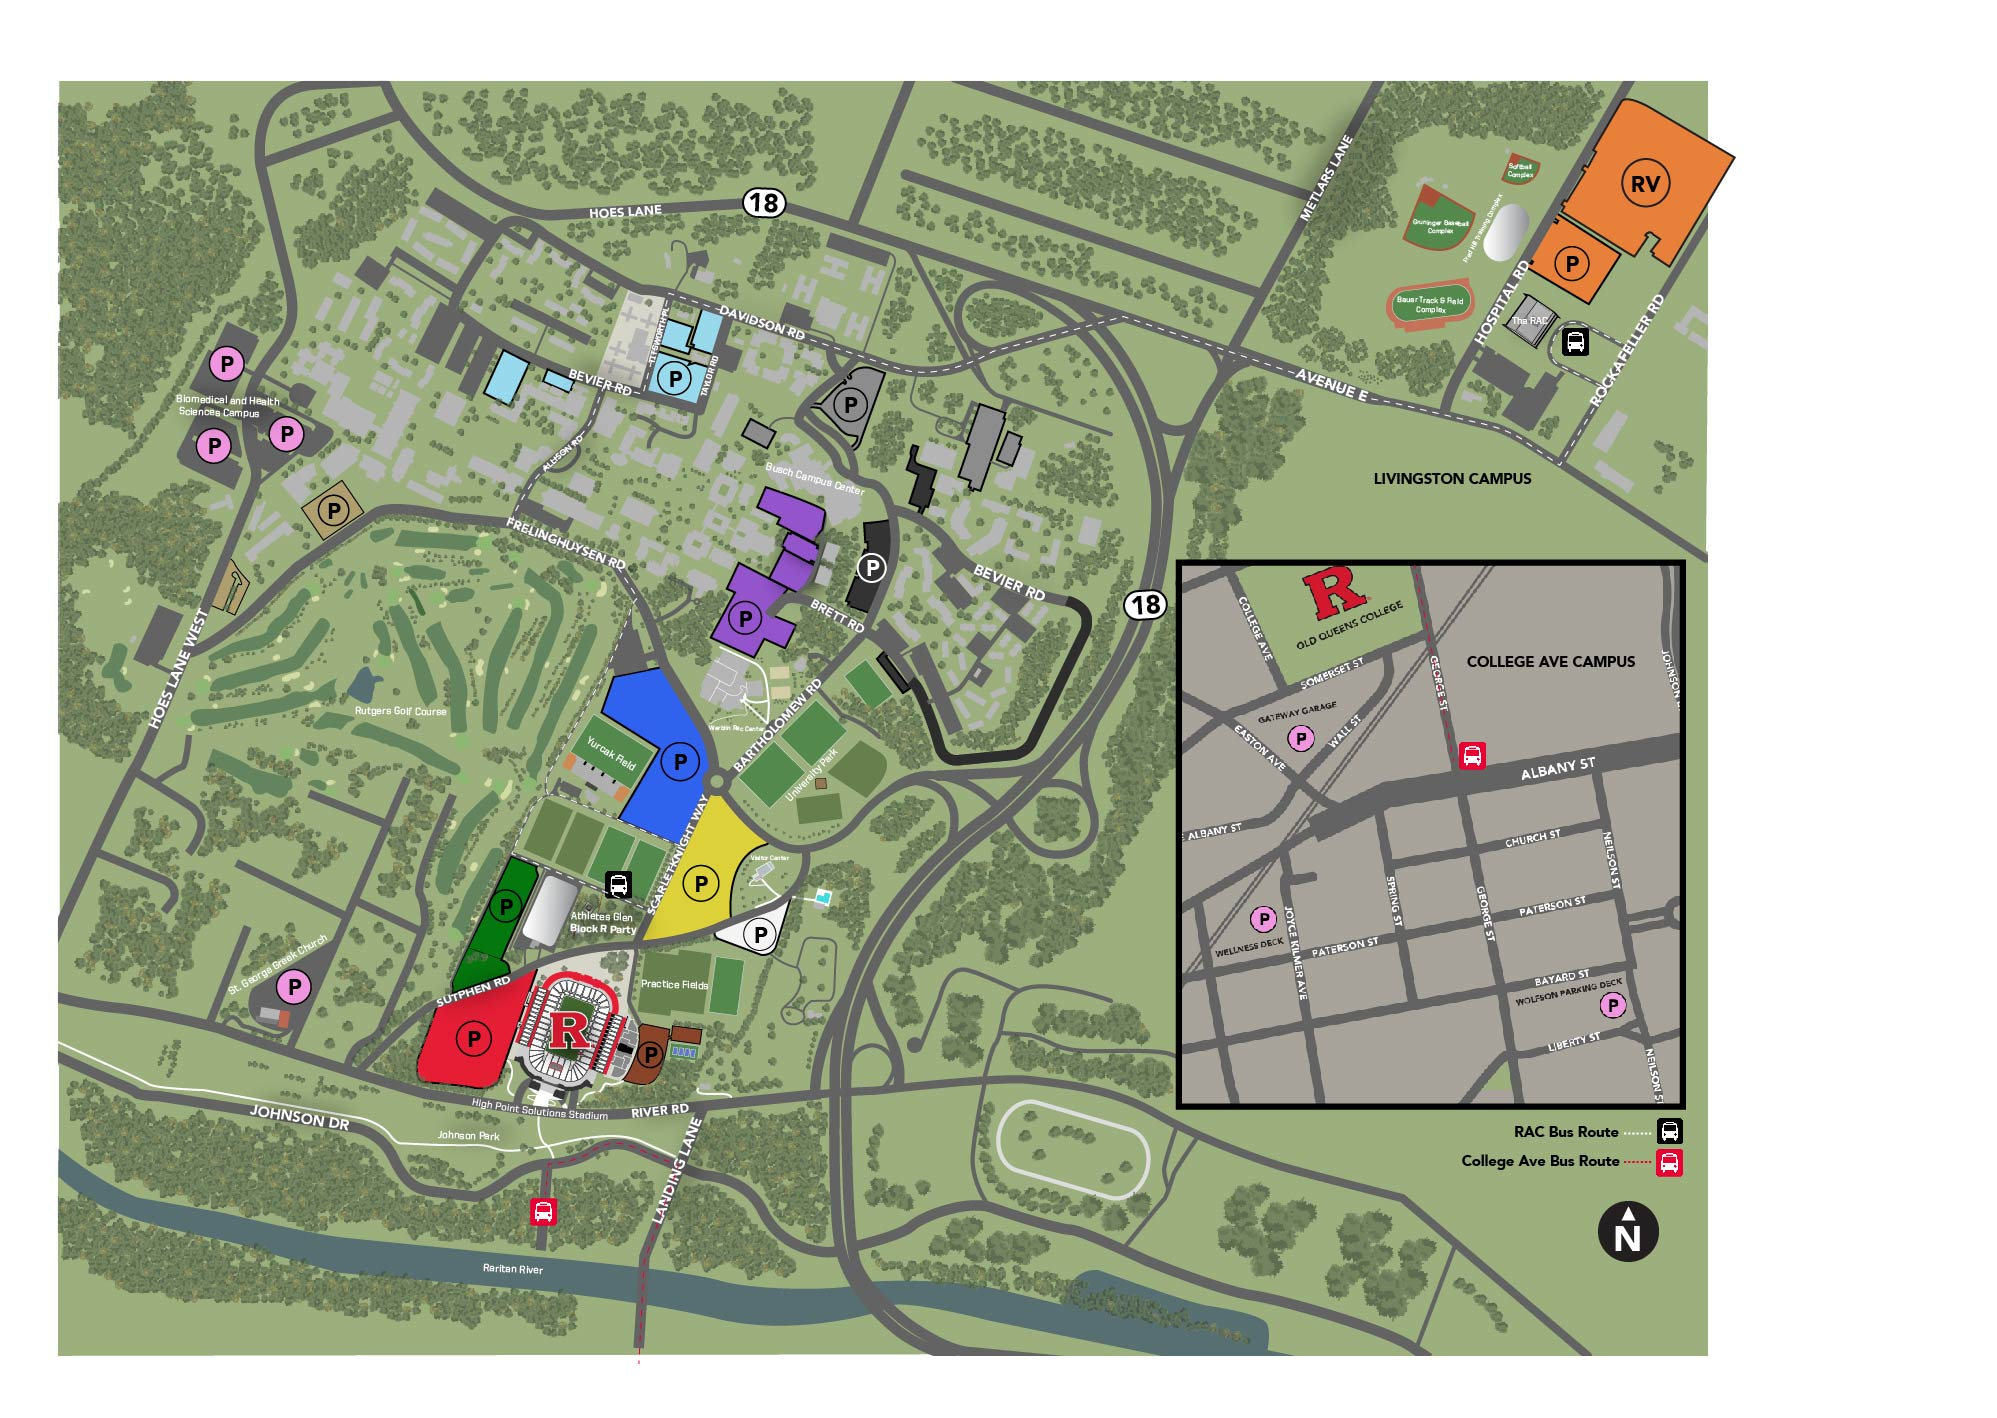 Rutgers Parking Map Football Parking and Traffic Patterns   Rutgers University Athletics Rutgers Parking Map